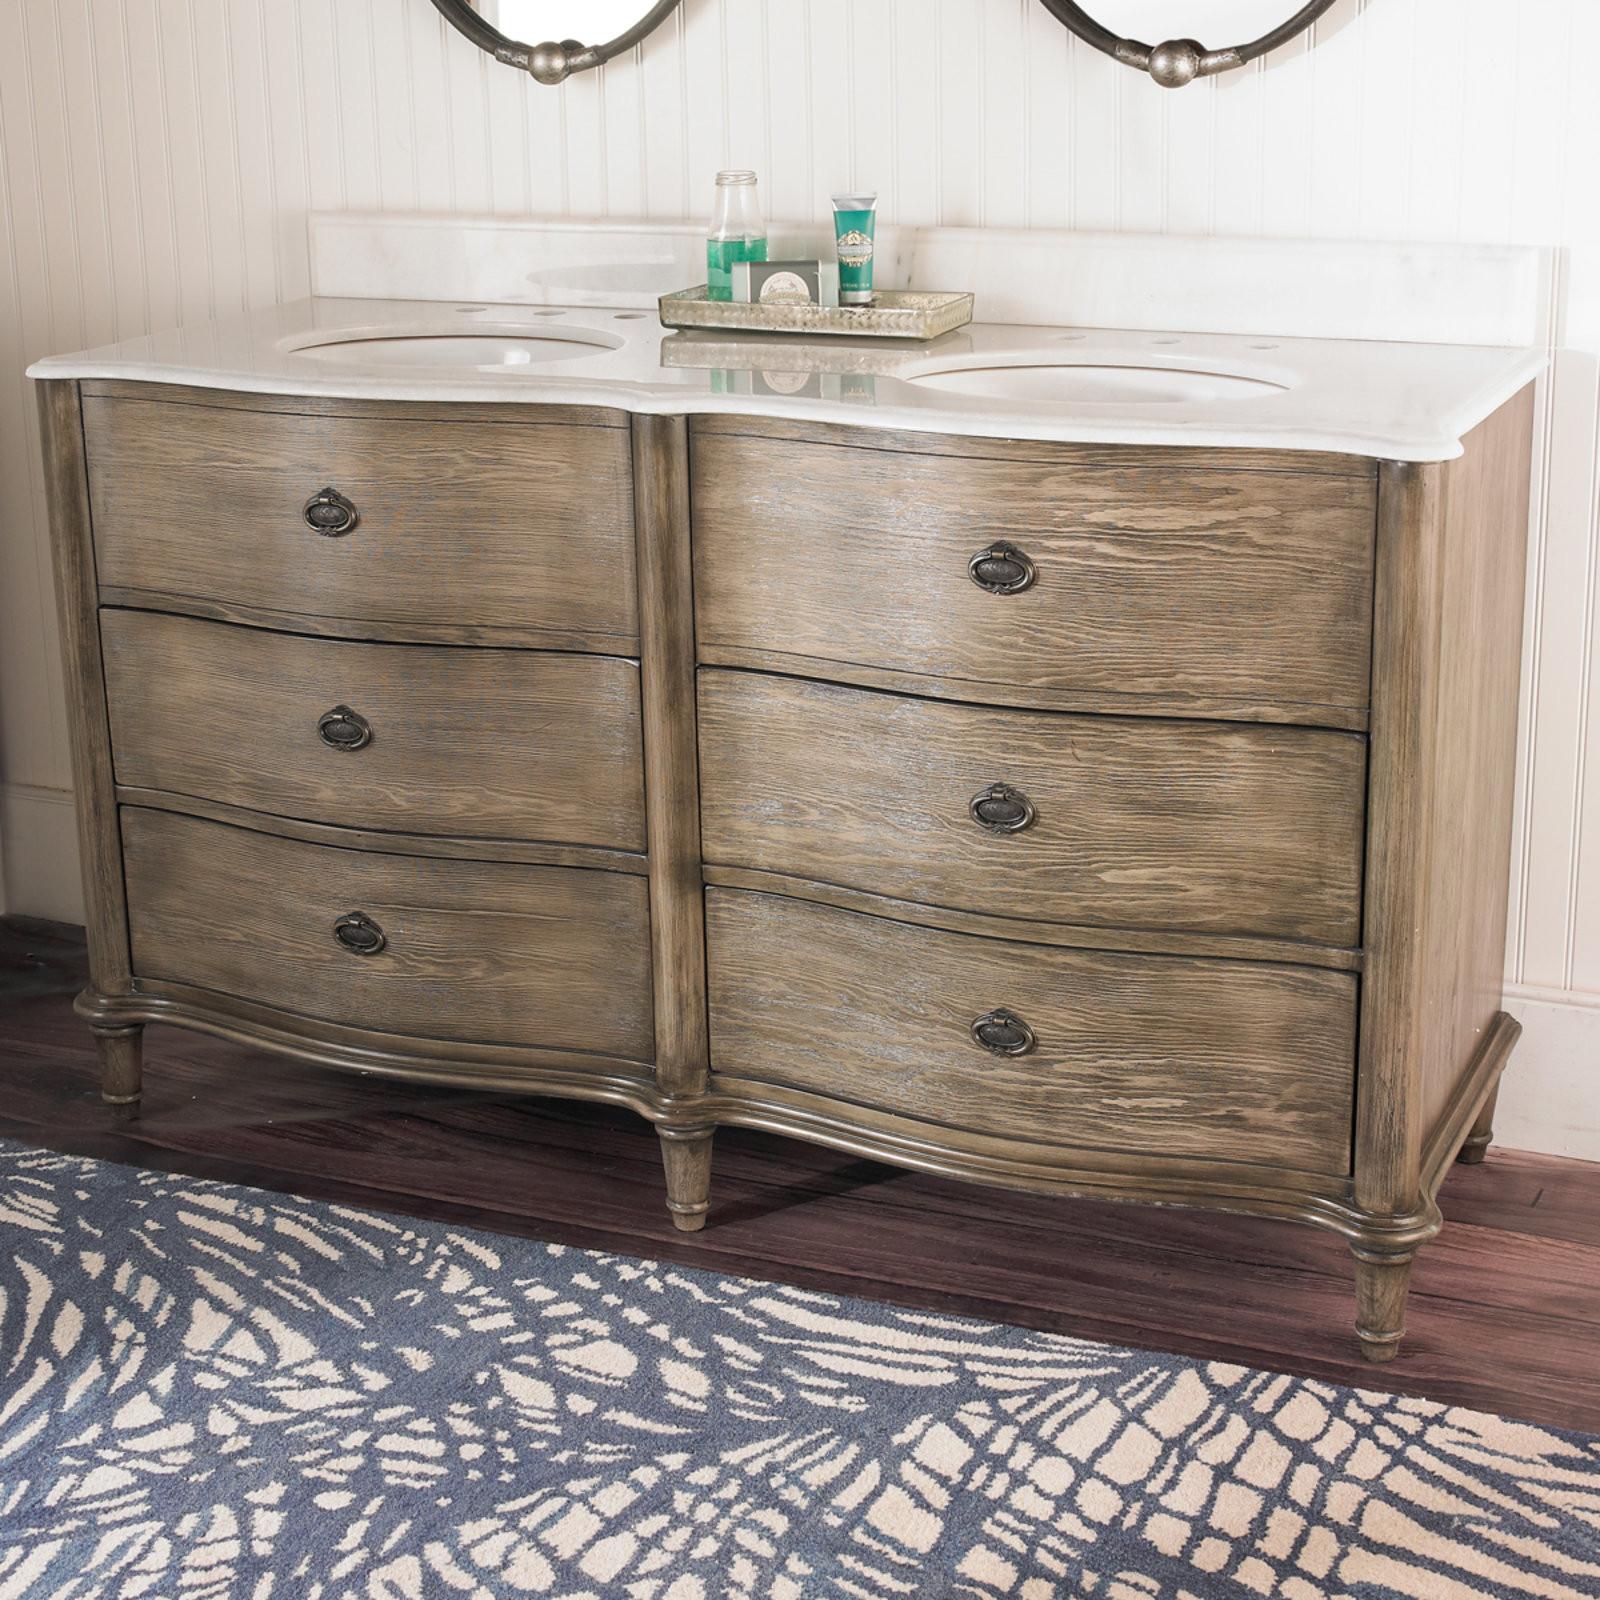 Dresser Bathroom Vanity  Dresser Style Double Vanity Sink Shades of Light